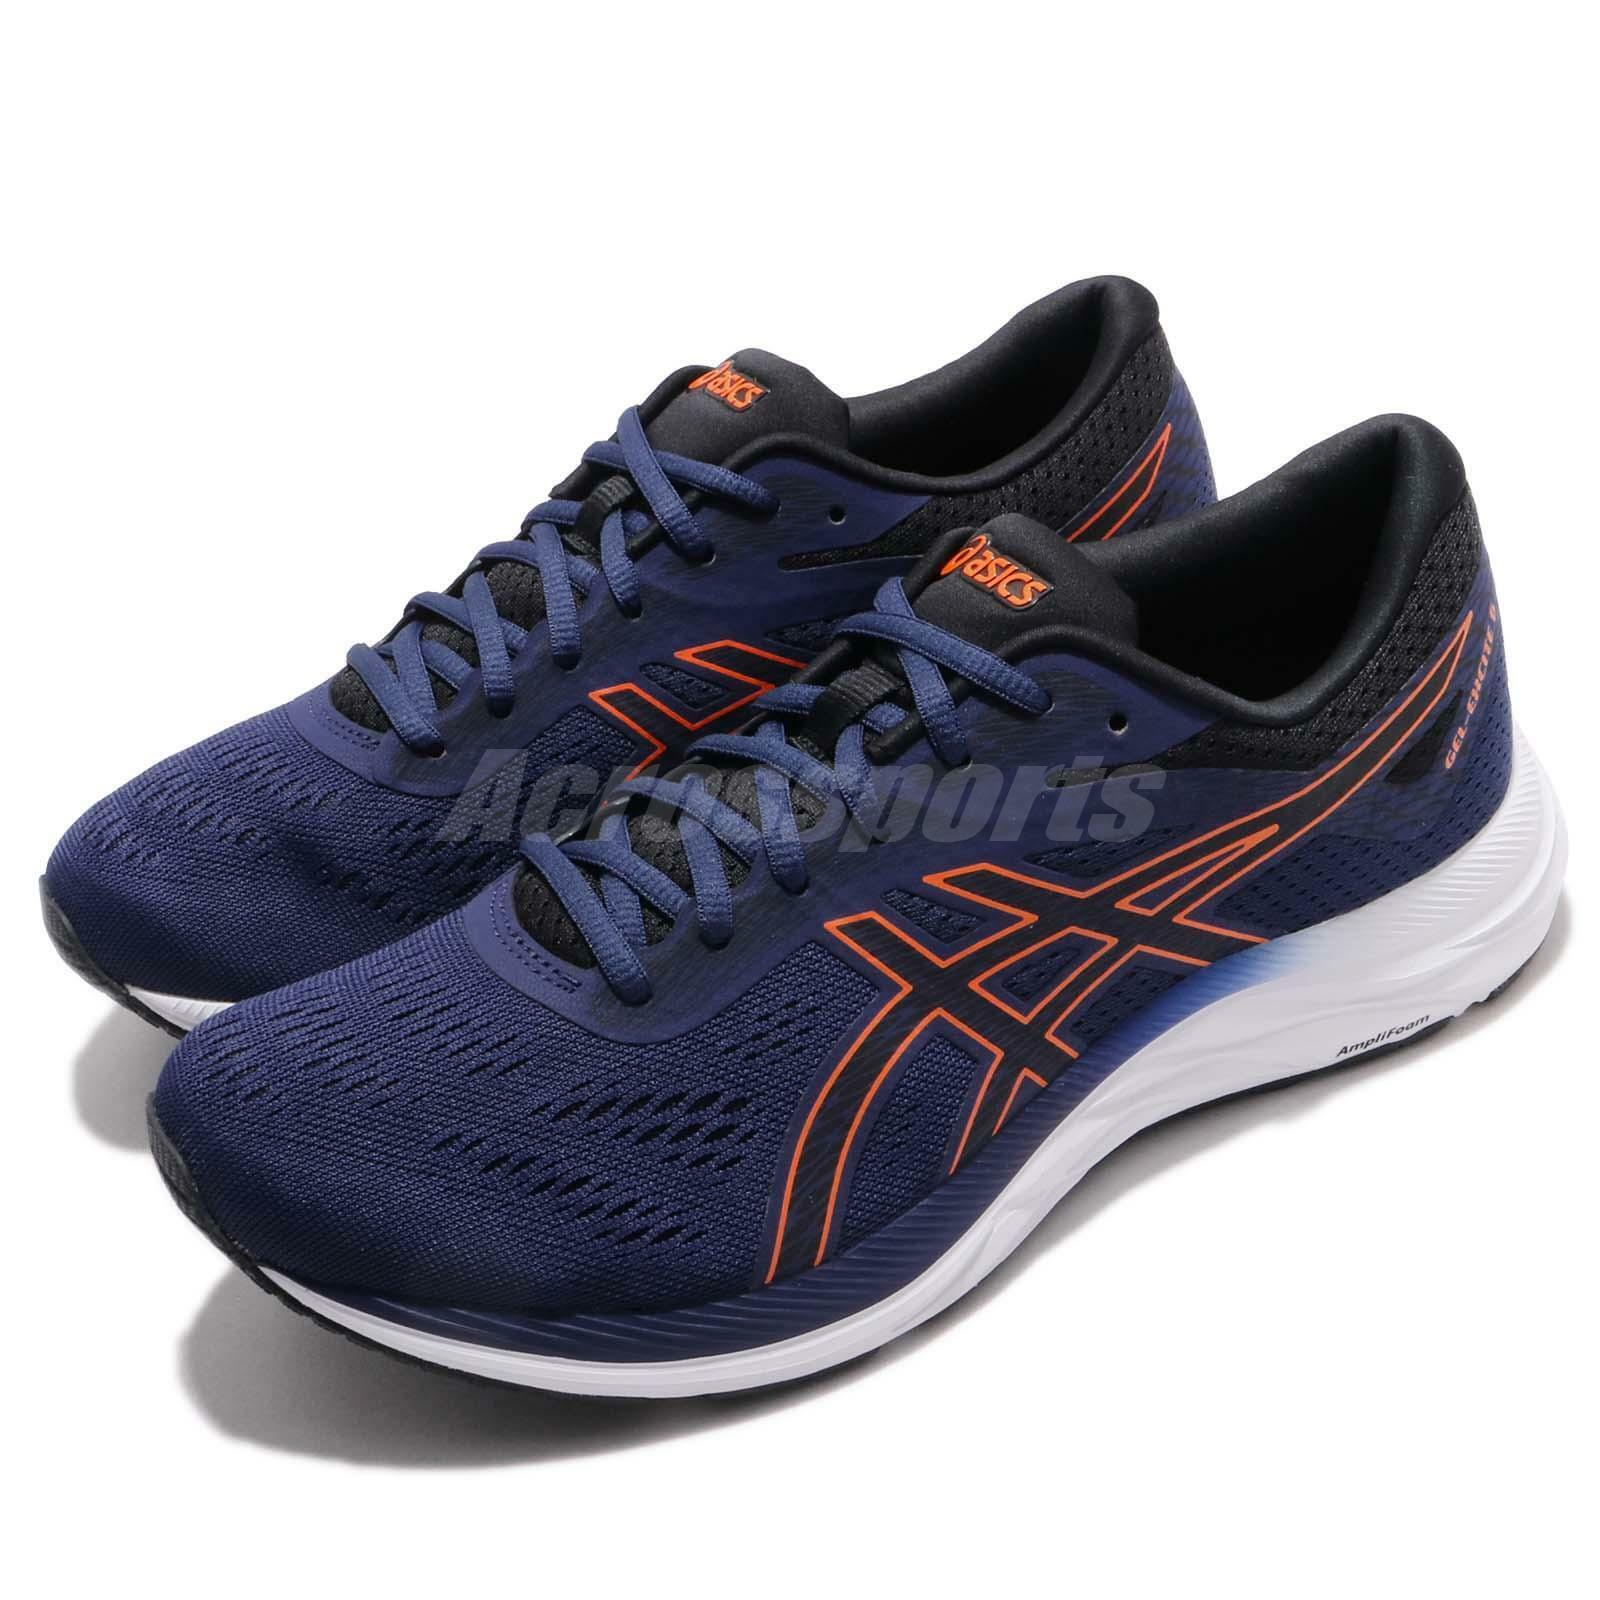 Asics Gel-Excite 6 Indigo blueee orange  Men Running shoes Sneakers 1011A165-400  save up to 30-50% off